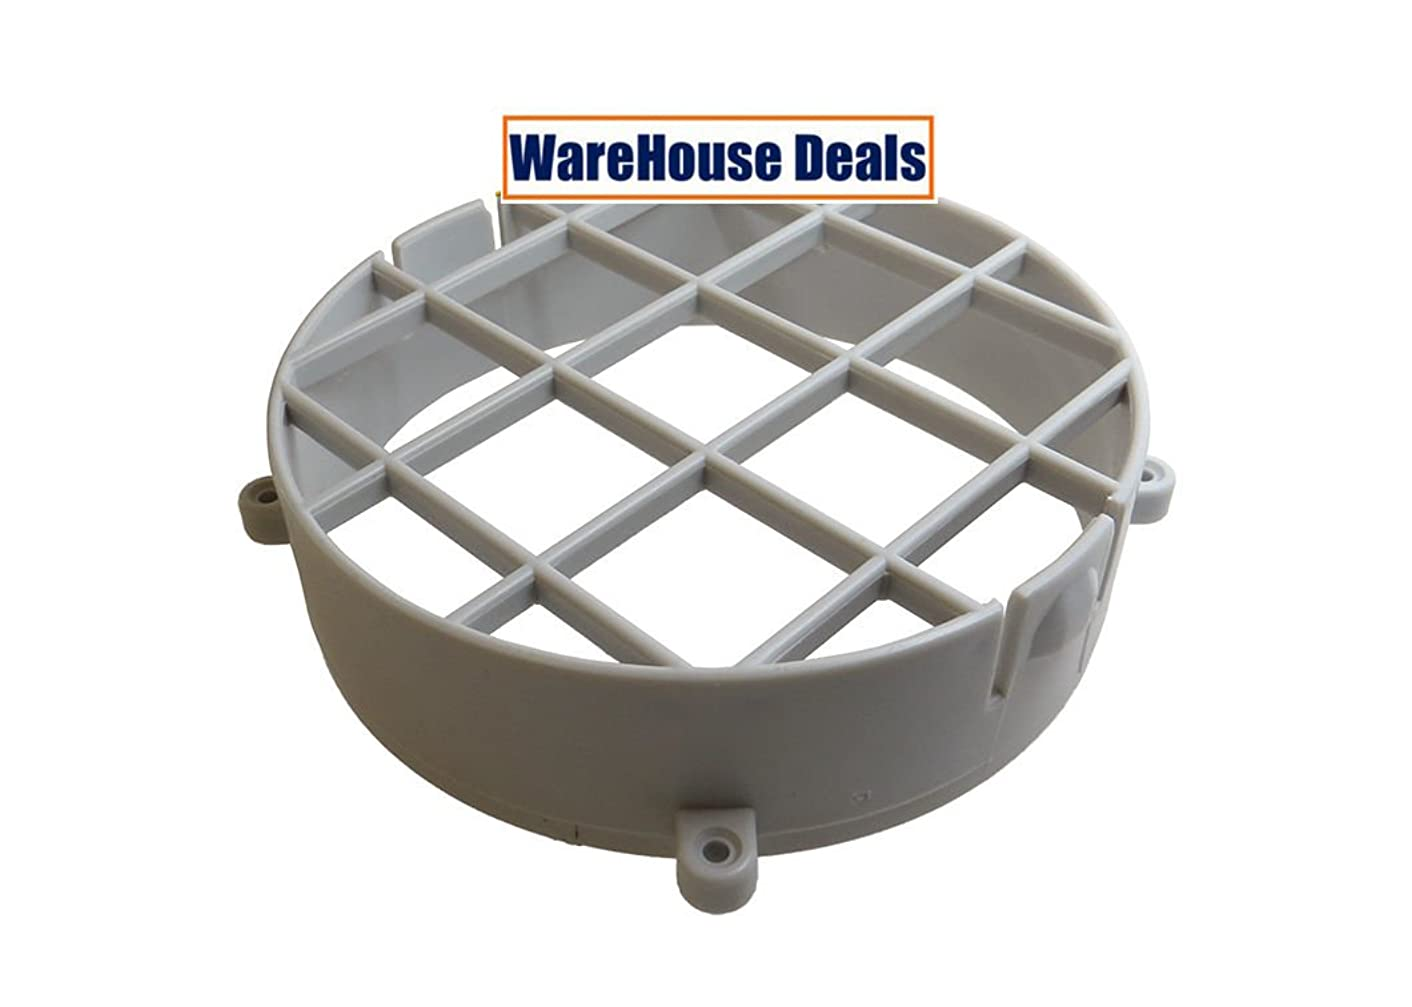 A/C Exhaust Hose/Tube Connector Filter for Portable Air Conditioner fits 5